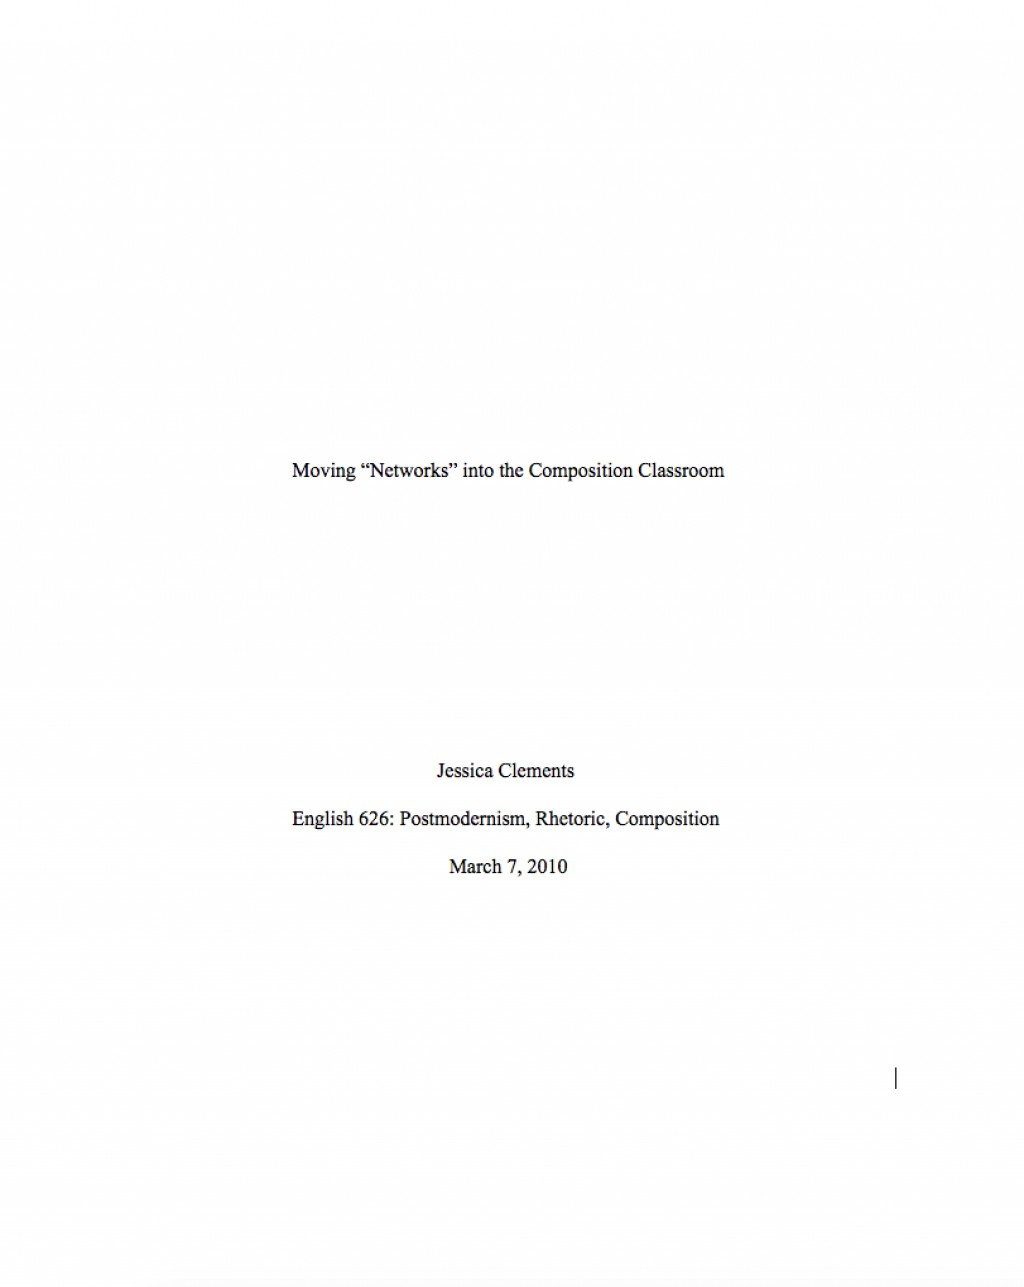 005 Research Paper Chicago Style Outline Example 20180216121200 717 02 Exceptional Template Large